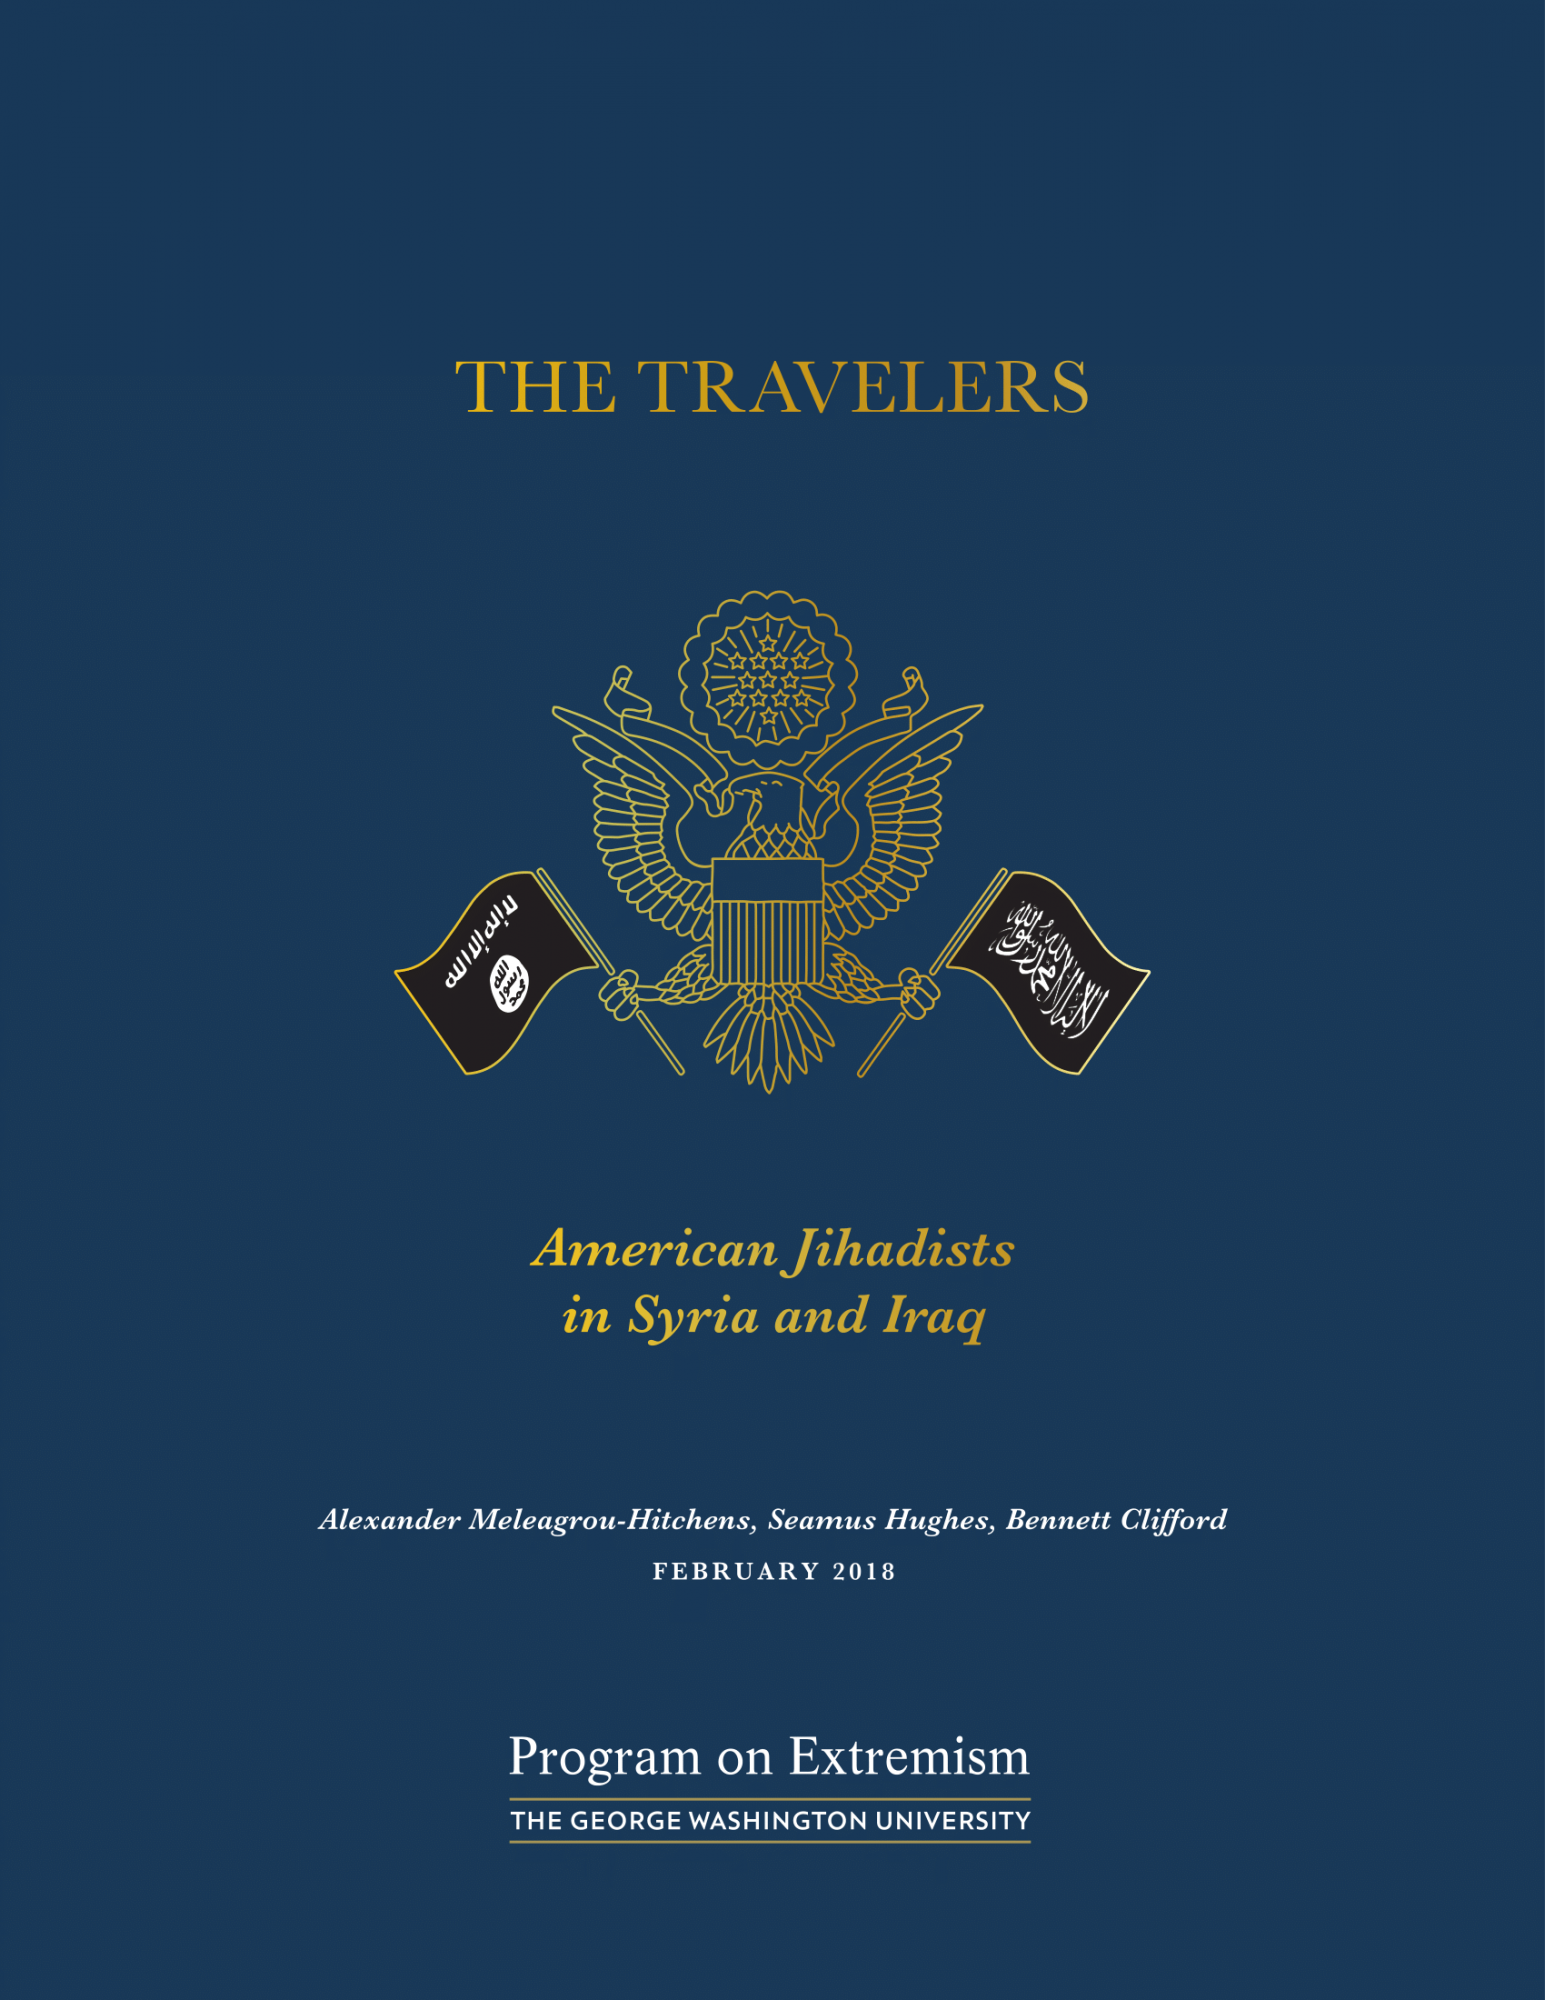 The Travelers: American Jihadists in Syria and Iraq